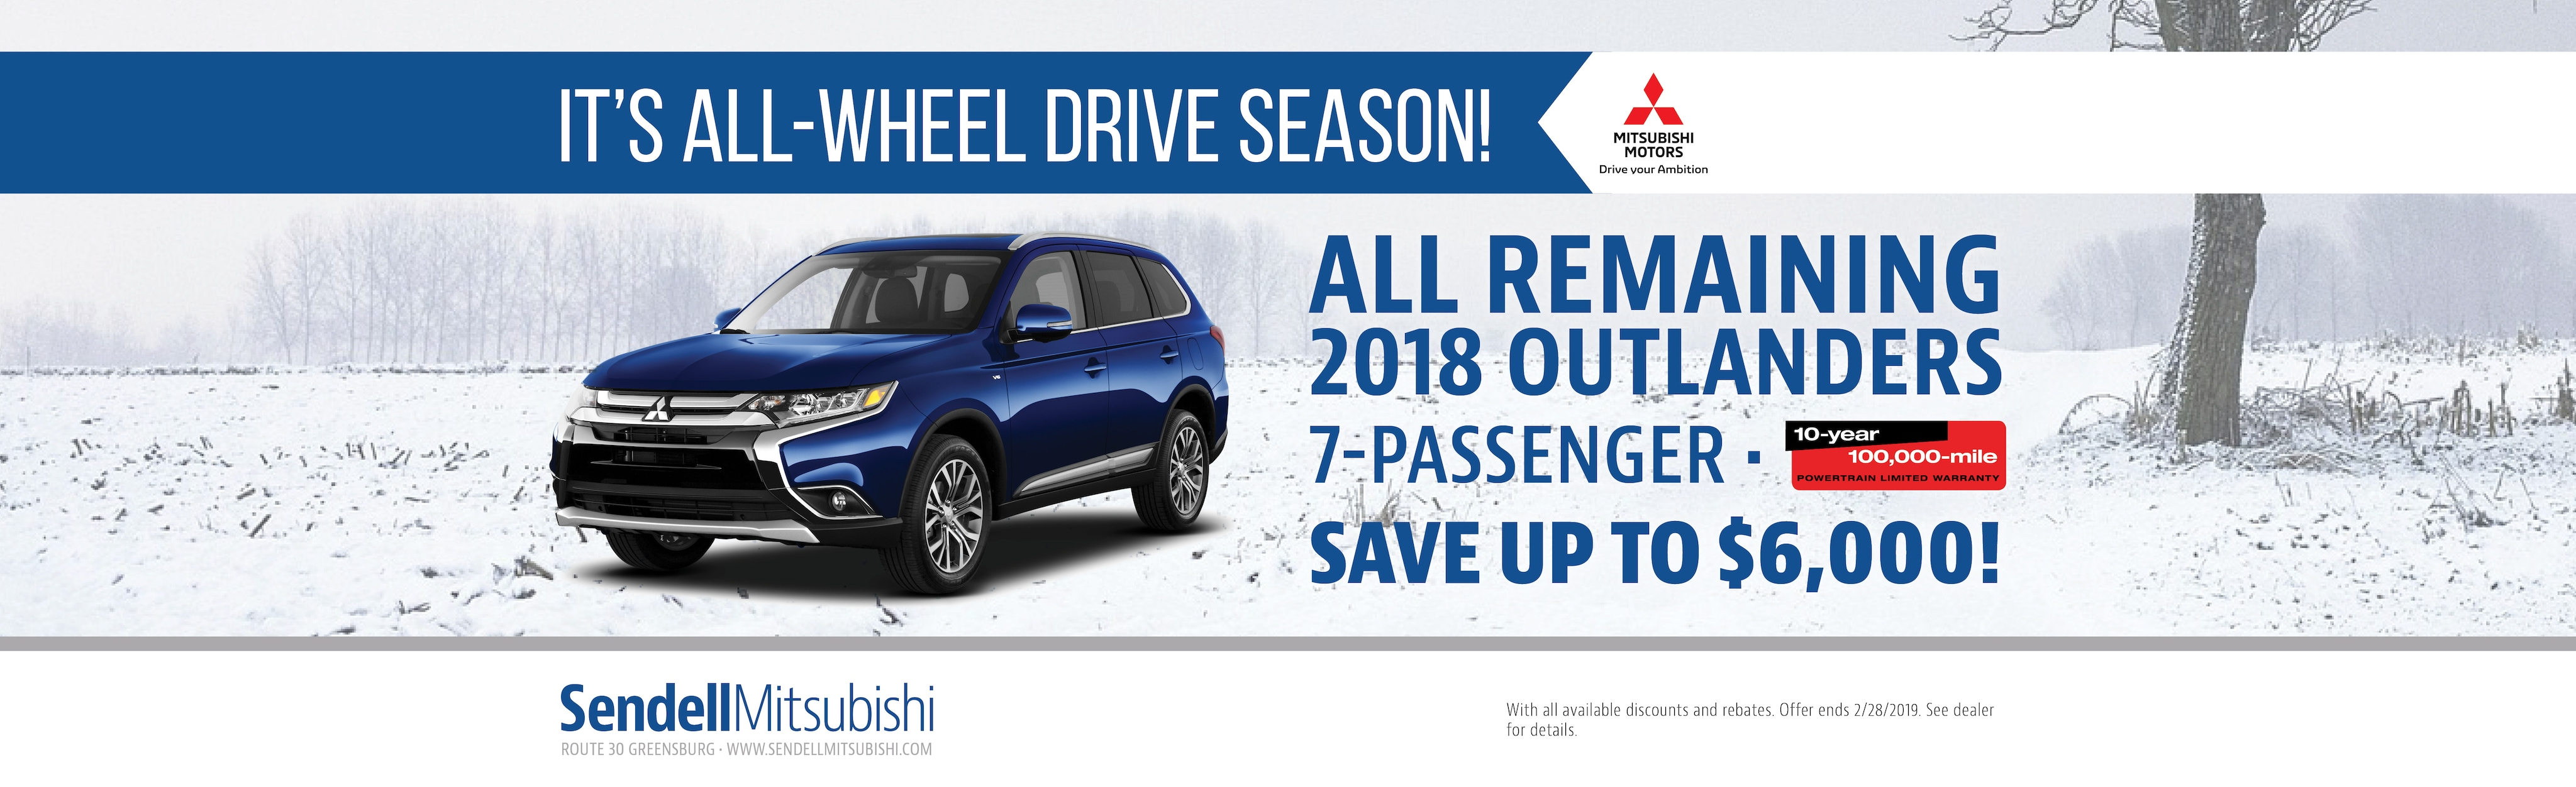 Sendell-motors-staffNew Vehicle Specials Sendell Mitsubishi